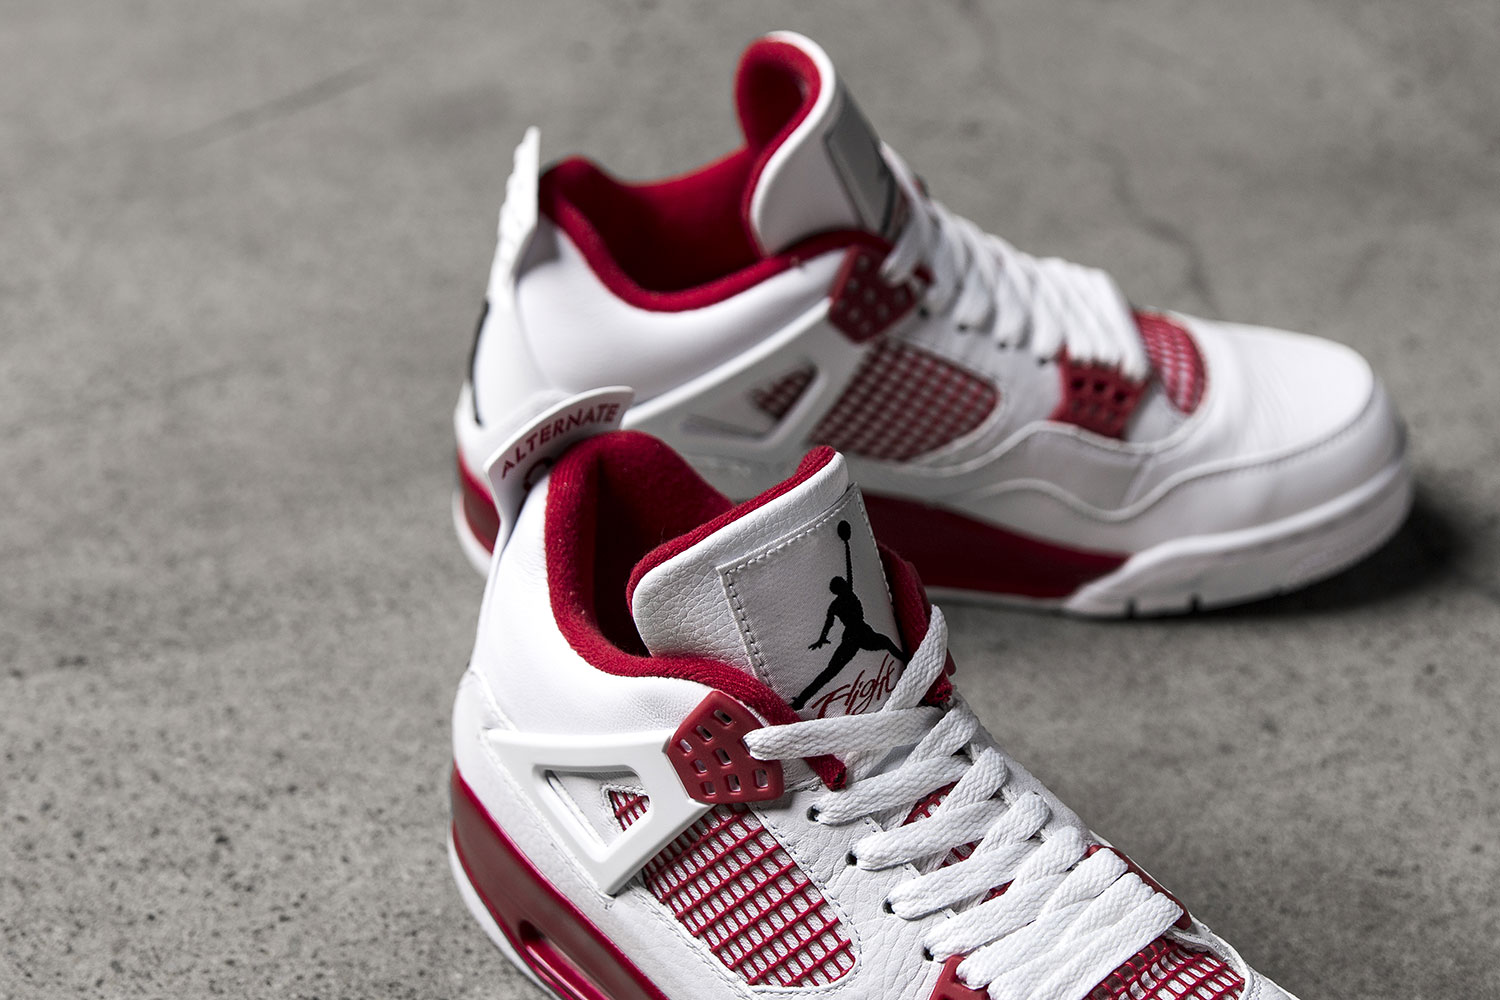 f36cc8d2532 FIRST RETRO RELEASE AIR JORDAN 4  ALTERNATE 89  FOR NEW YEAR!